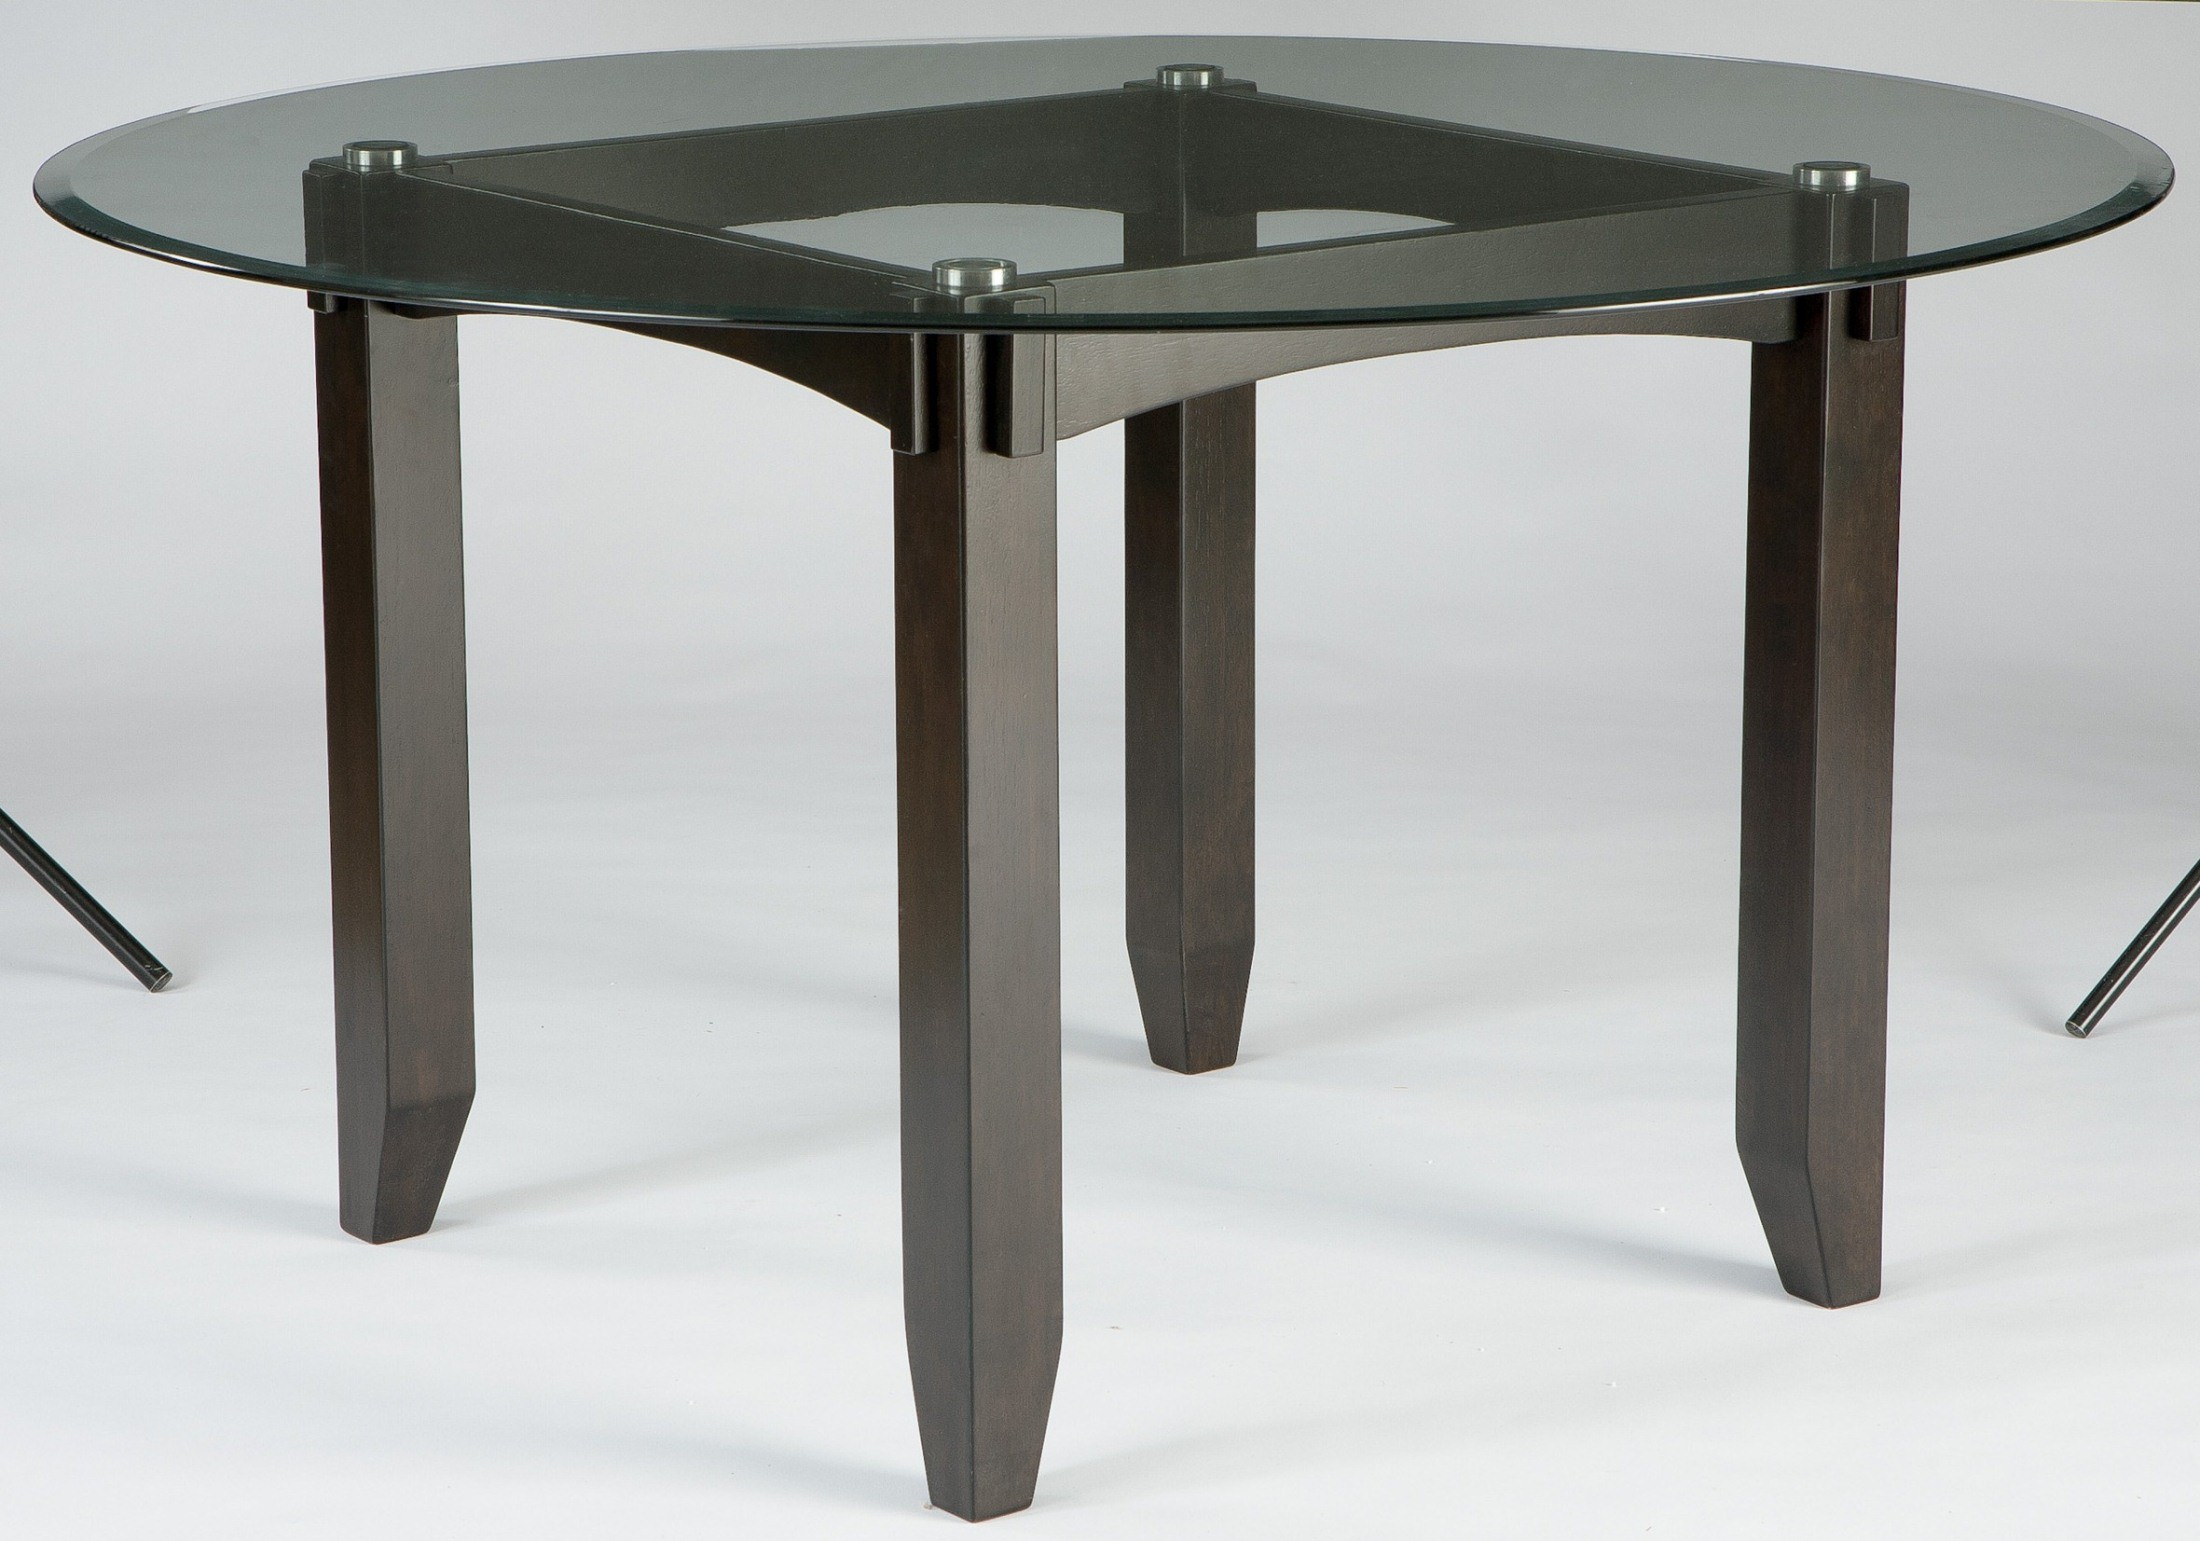 trishelle round dining room table d550 15b d100 50t ashley furniture